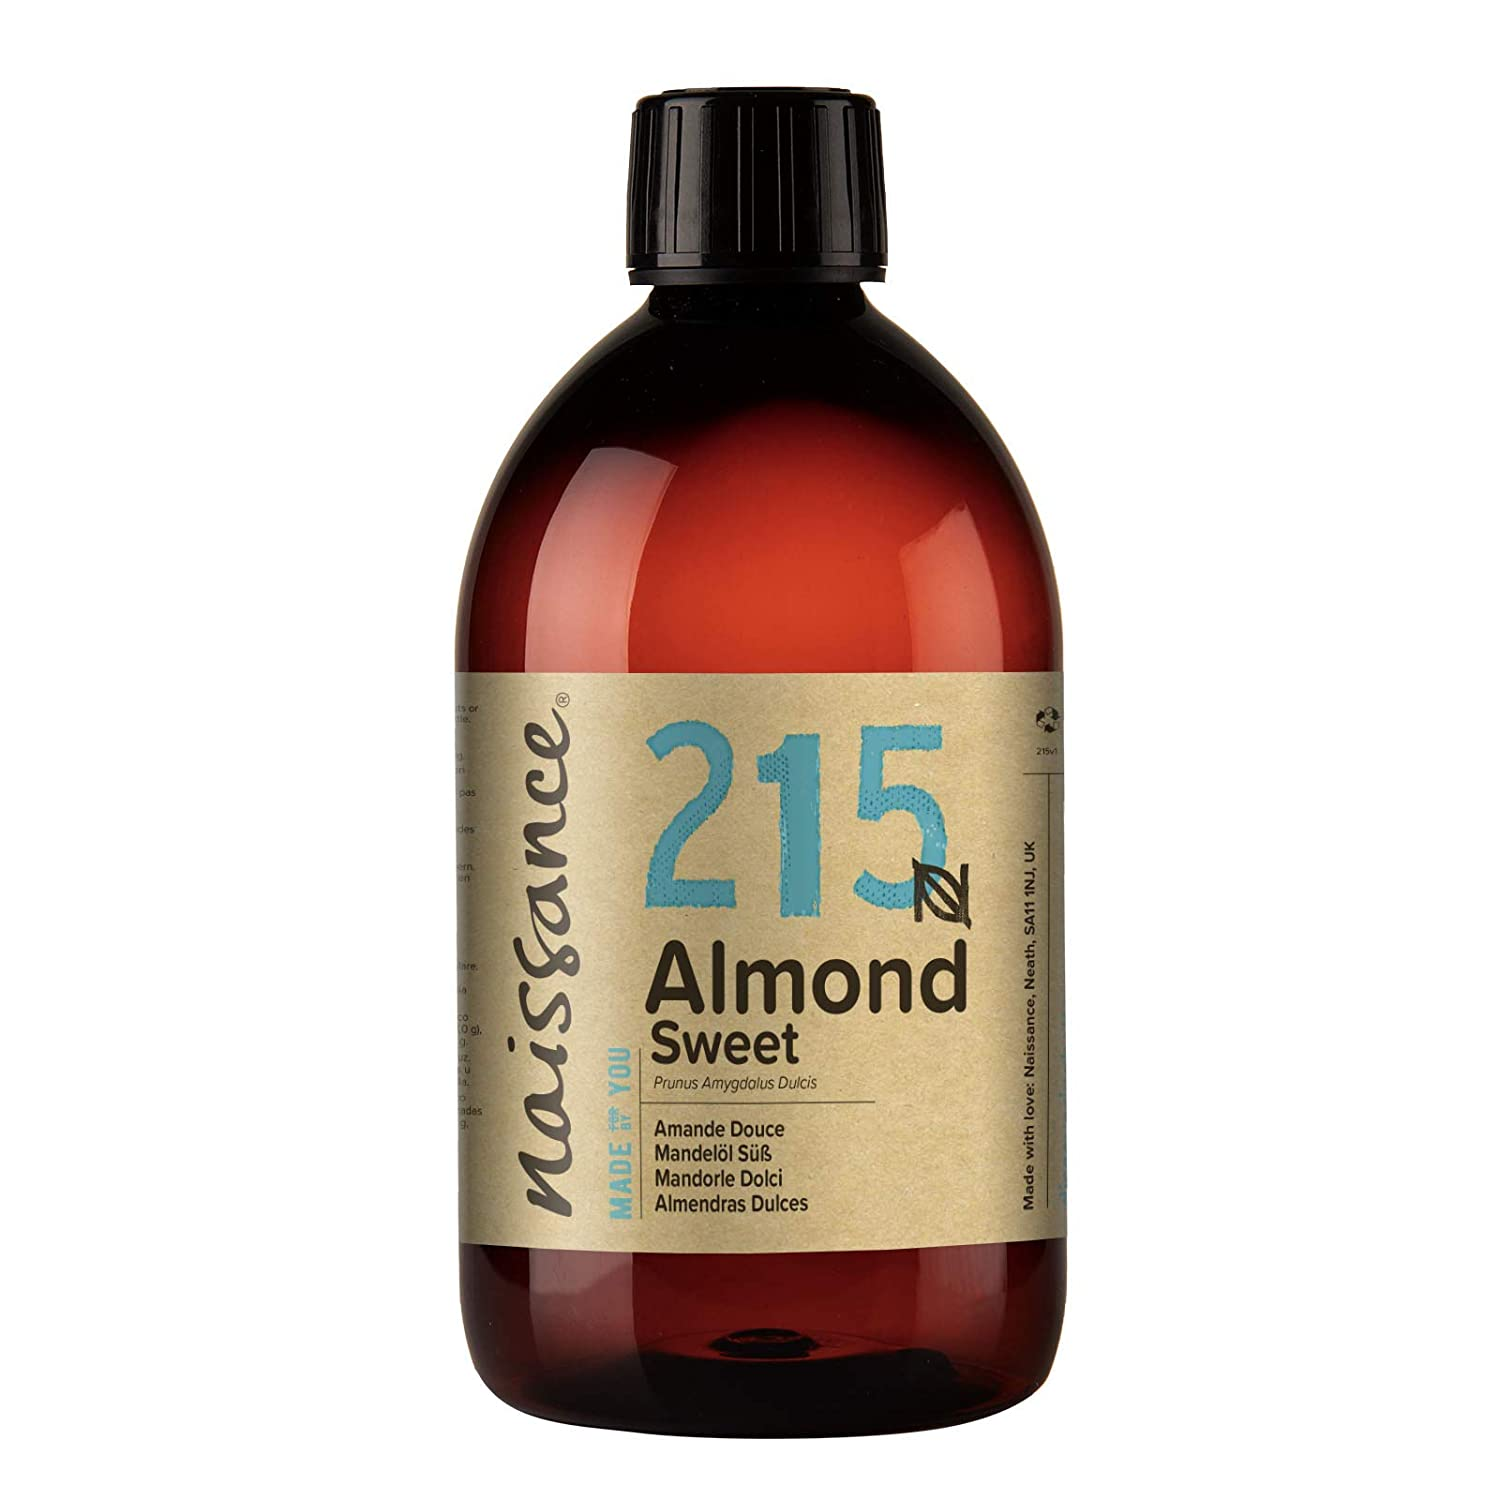 Naissance Sweet Almond Oil 16 fl oz - Pure & Natural, Vegan, Non GMO, Hexane Free, Cruelty Free - Ideal for Haircare and Skincare, Aromatherapy & Massage